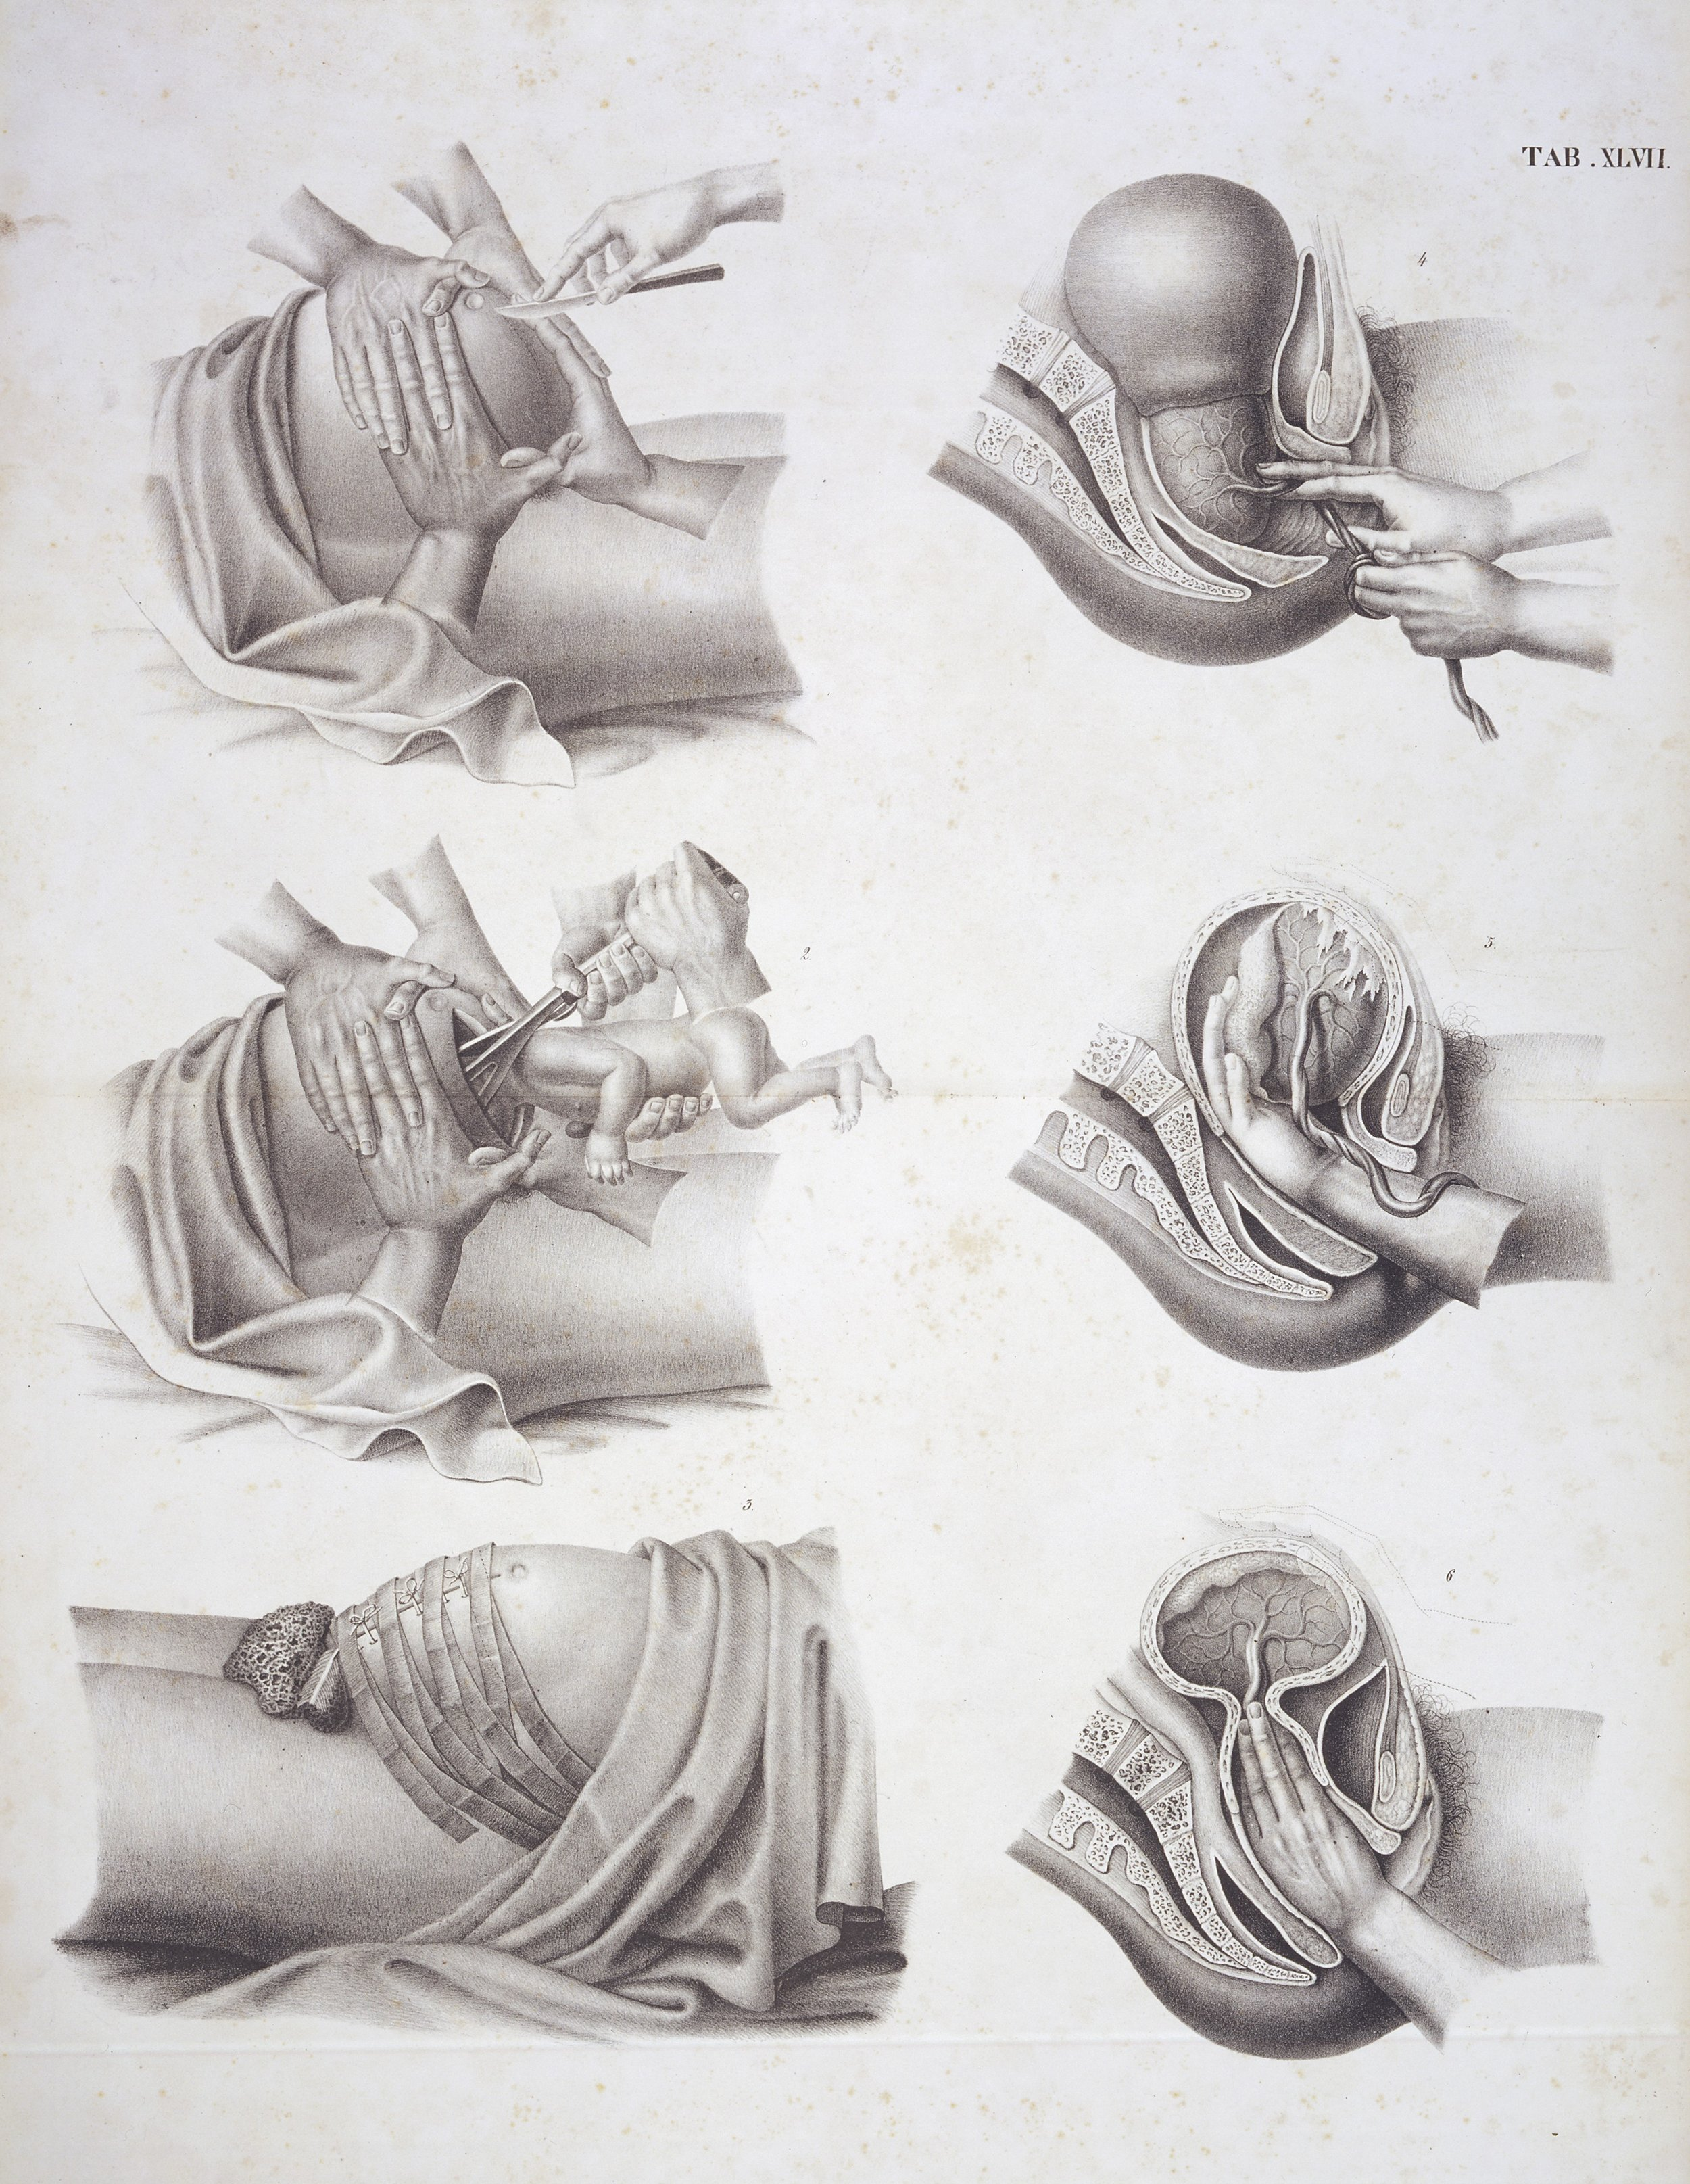 What do you do when you don't have time to review the full history of obstetrics? |  Wellcome Collection